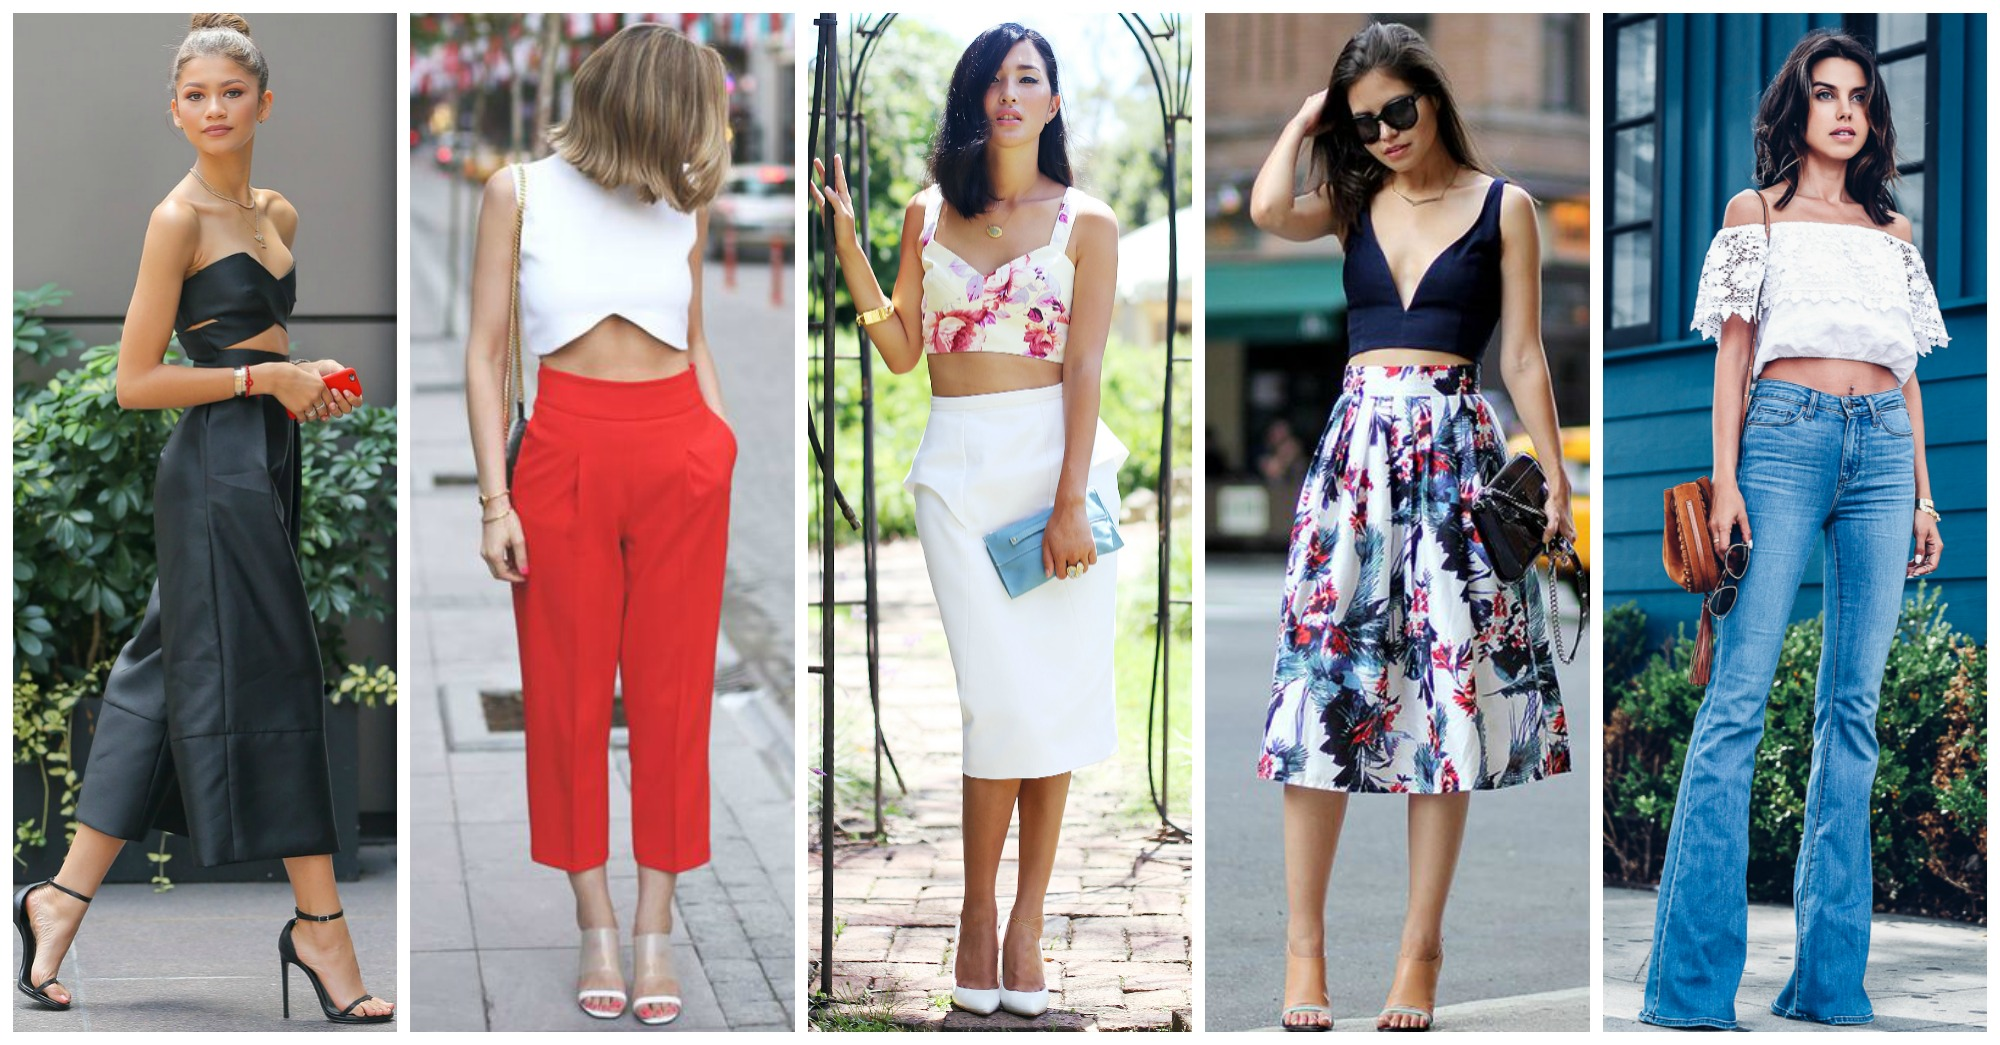 10 Fabulous Street Style Combos With Crop Tops